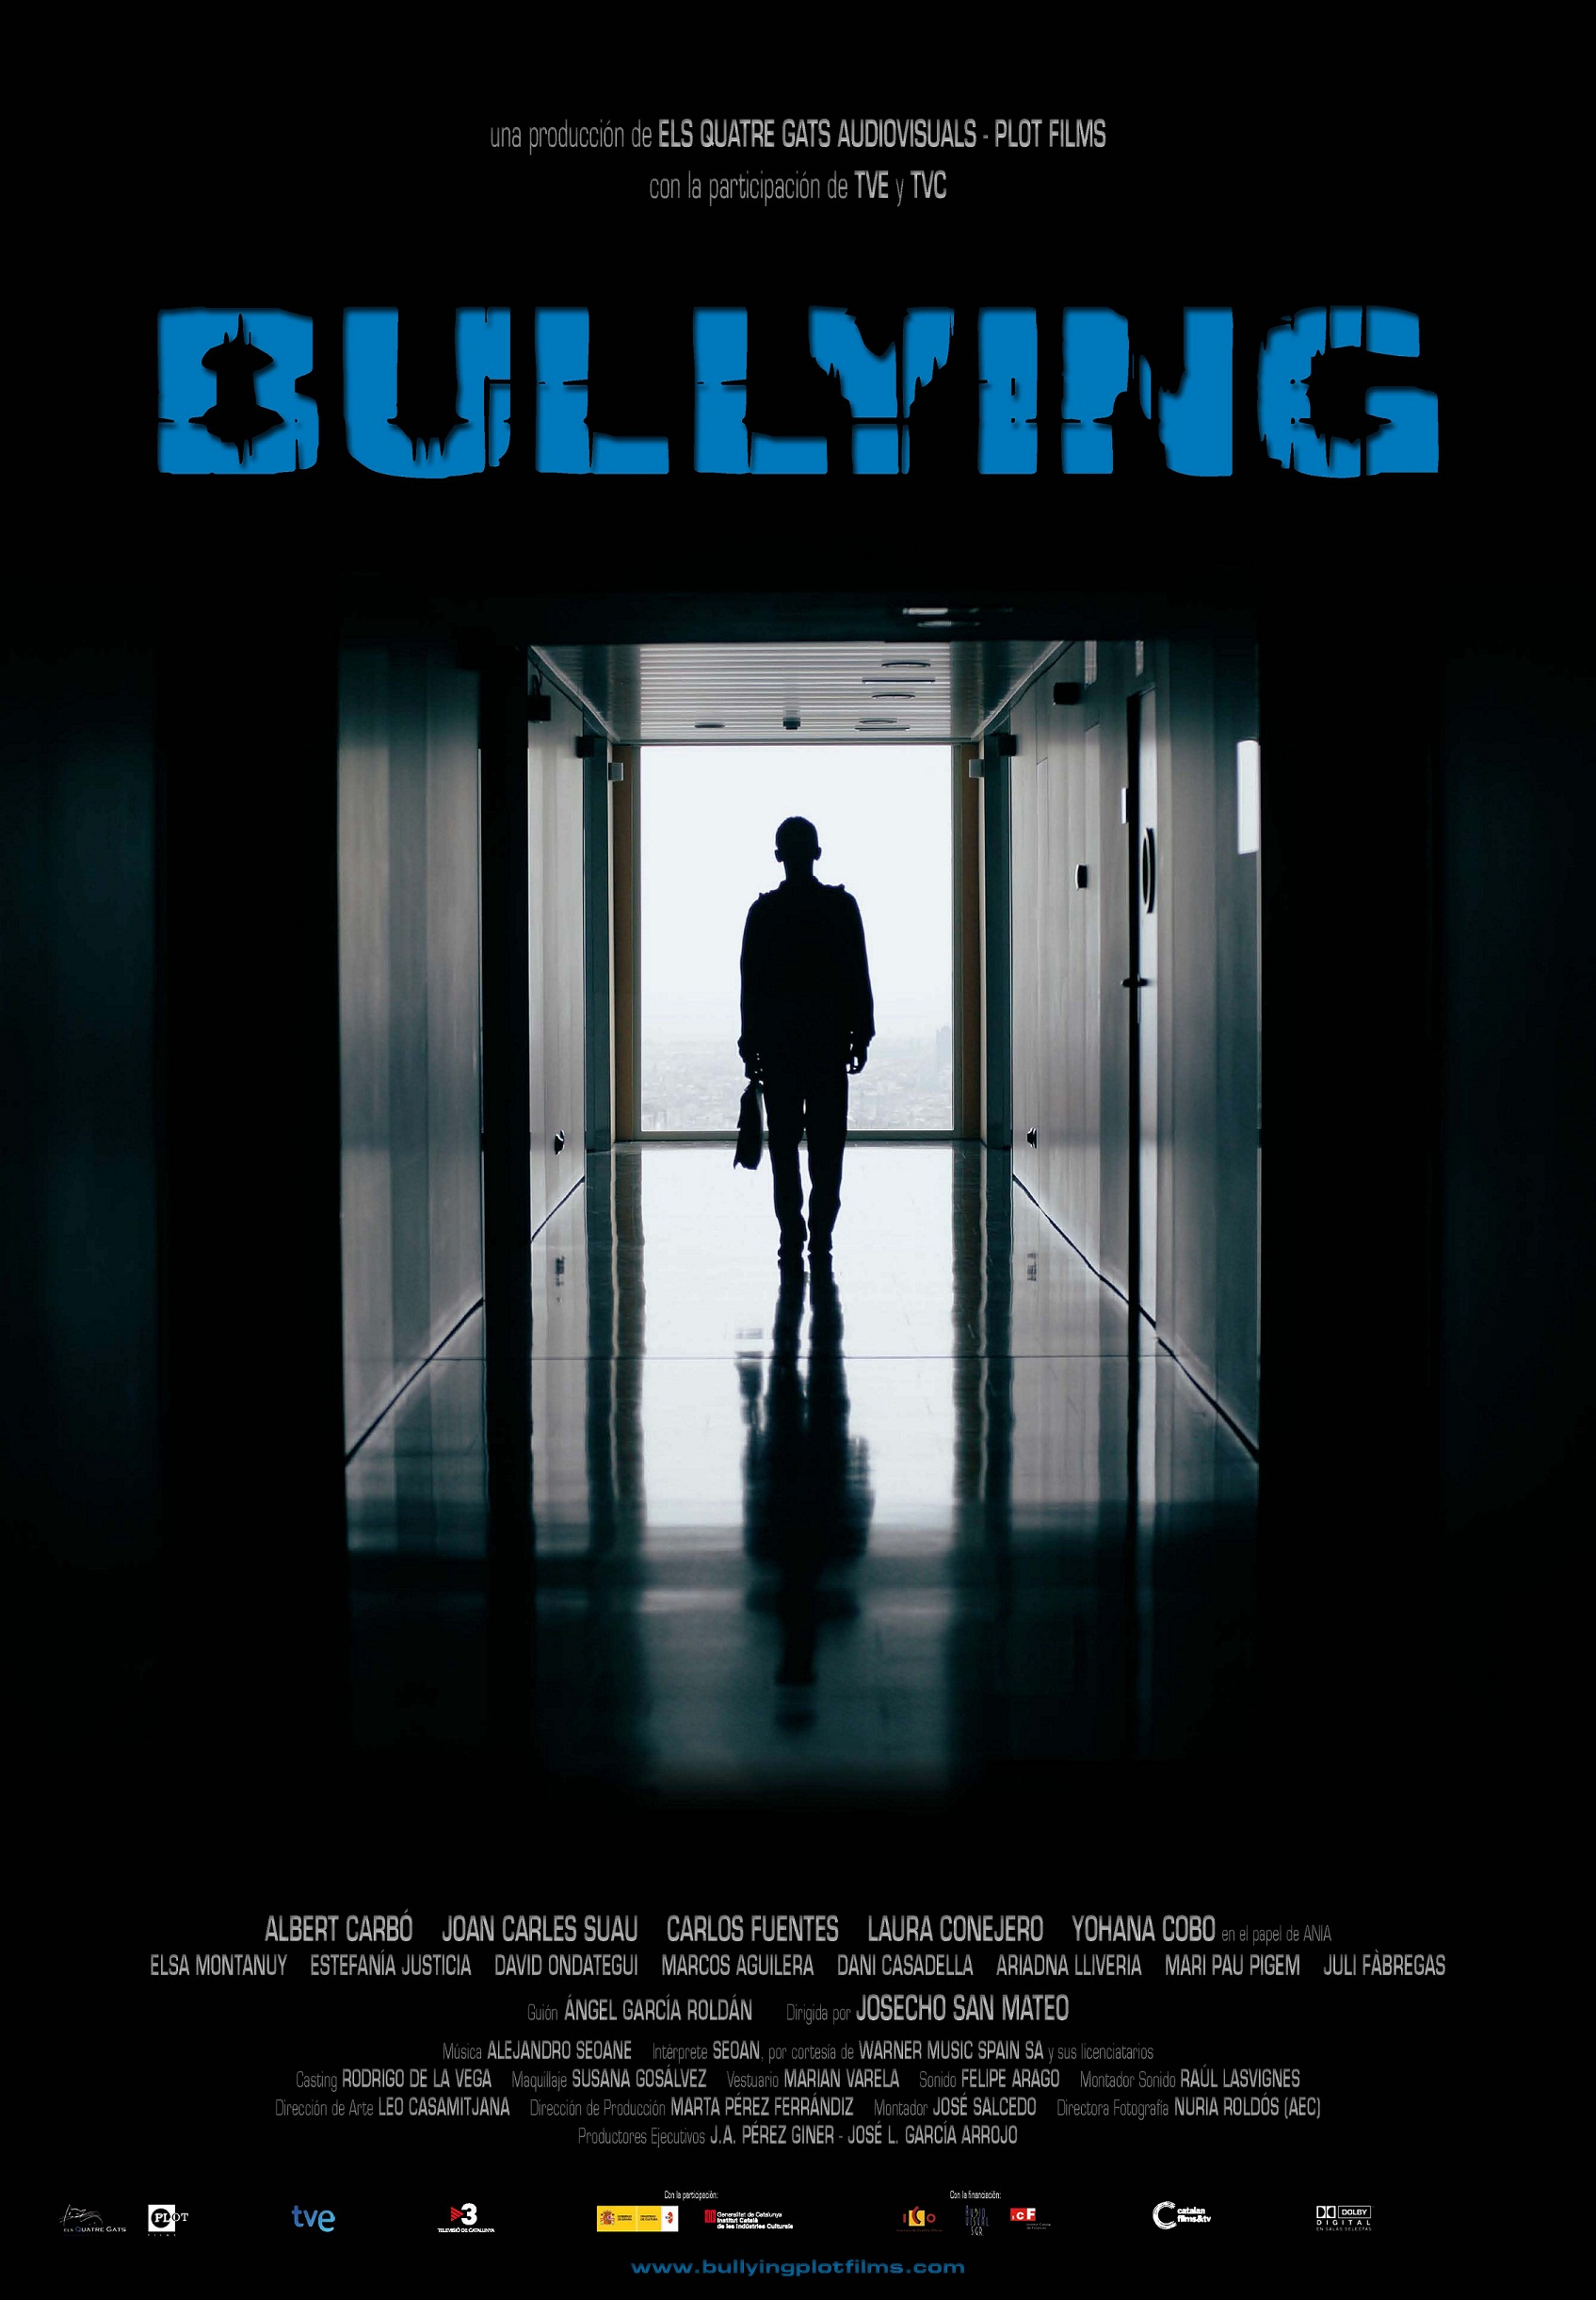 Digital Poster About Bullying